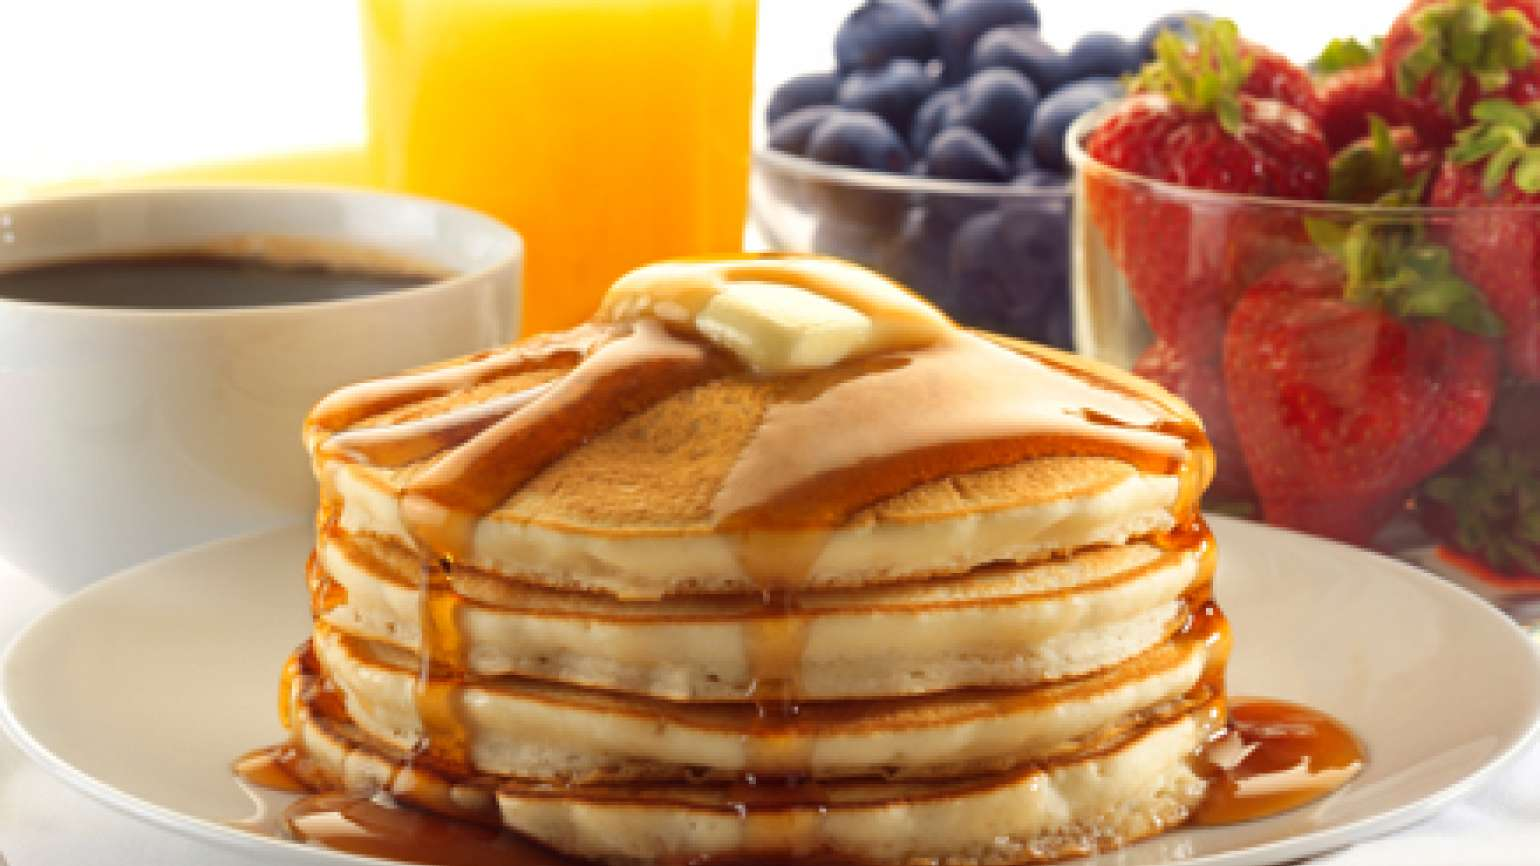 A stack of pancakes covered in butter and syrup